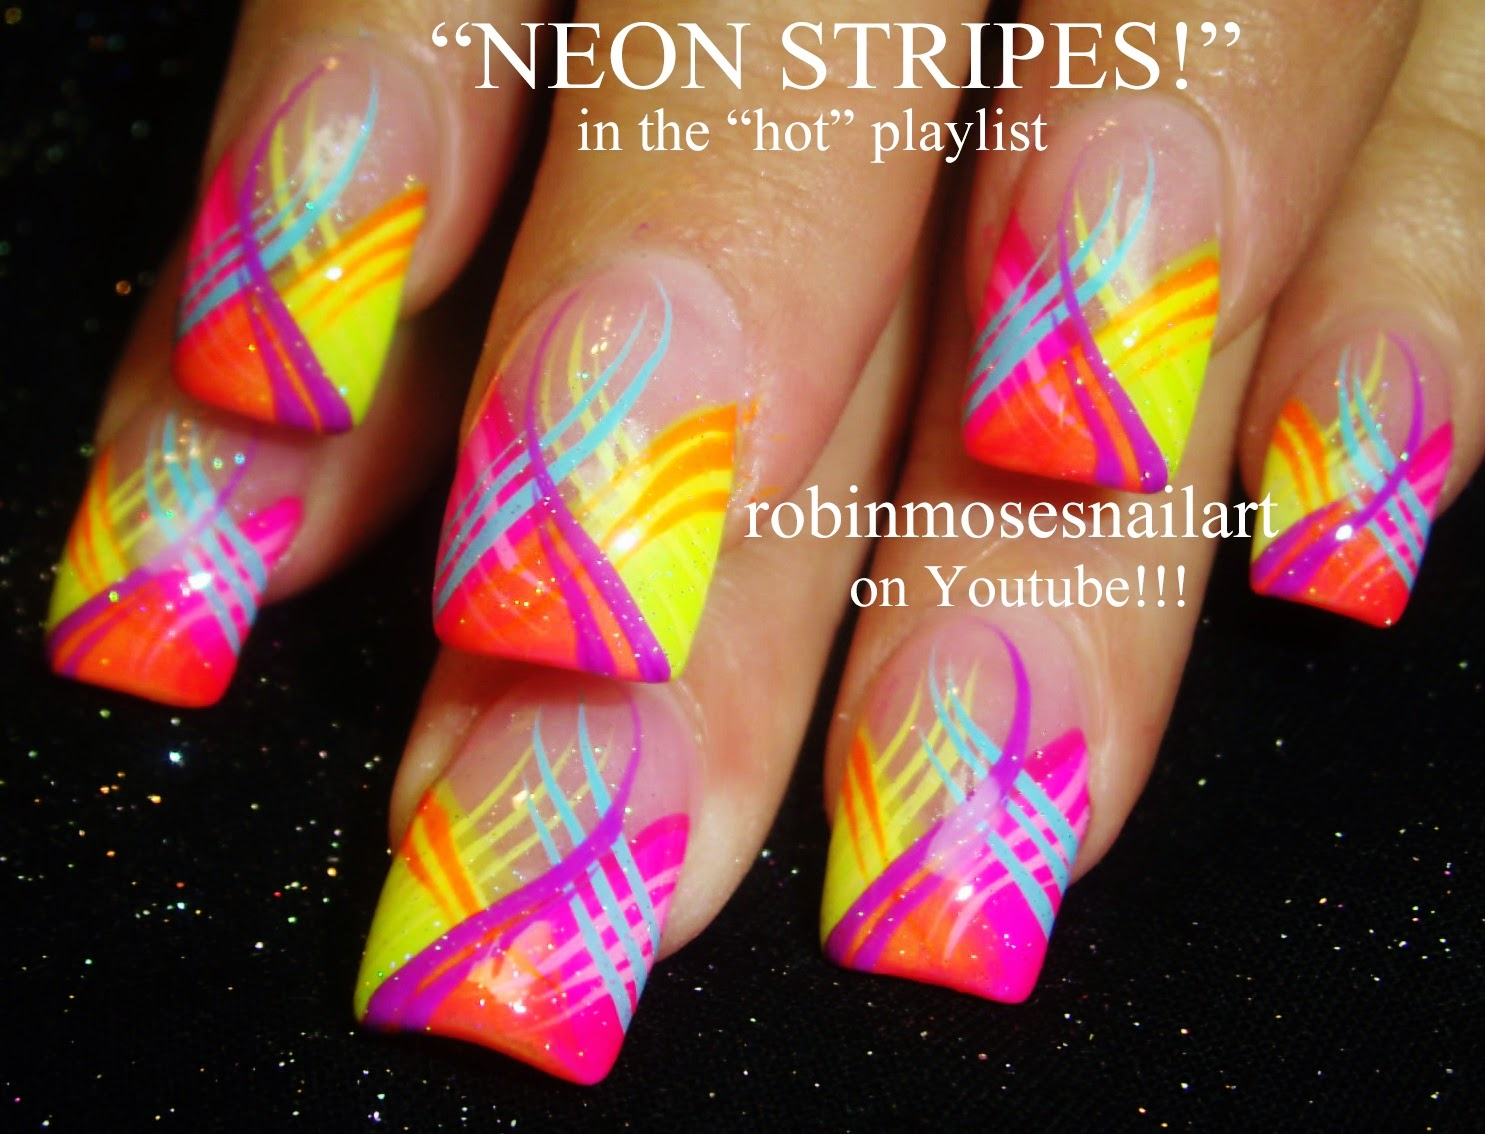 Hot Nail Art Playlist | Easy Nail Art Tutorials | Fierce Nail Design Ideas  for beginners to Advanced Nail Techs! - Robin Moses Nail Art: Bright And Colorful Trendy Kiss Prints